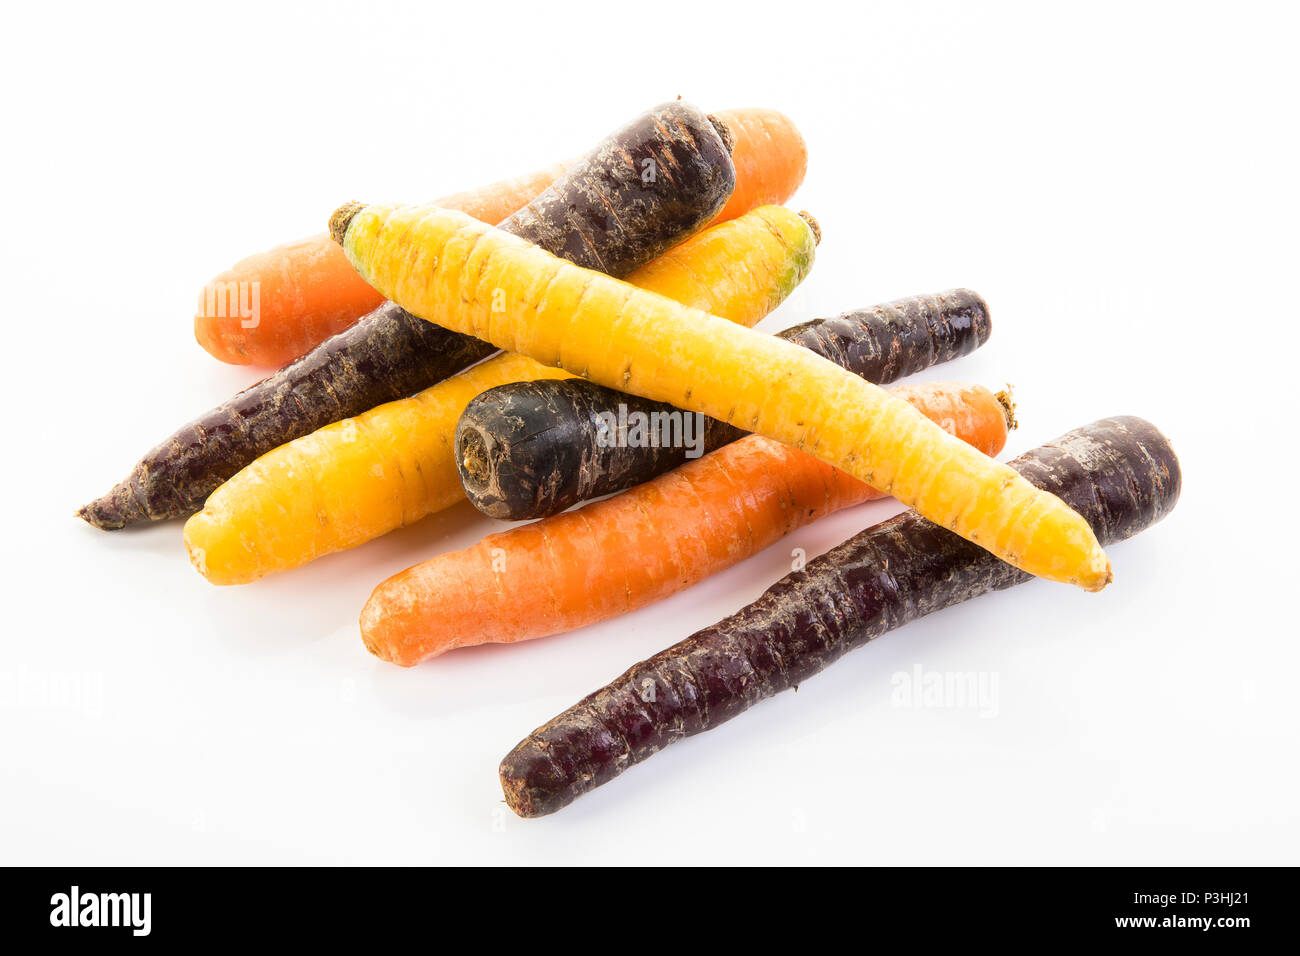 Karotten-Mix, orange, creme und violett farbene Karotten Stock Photo